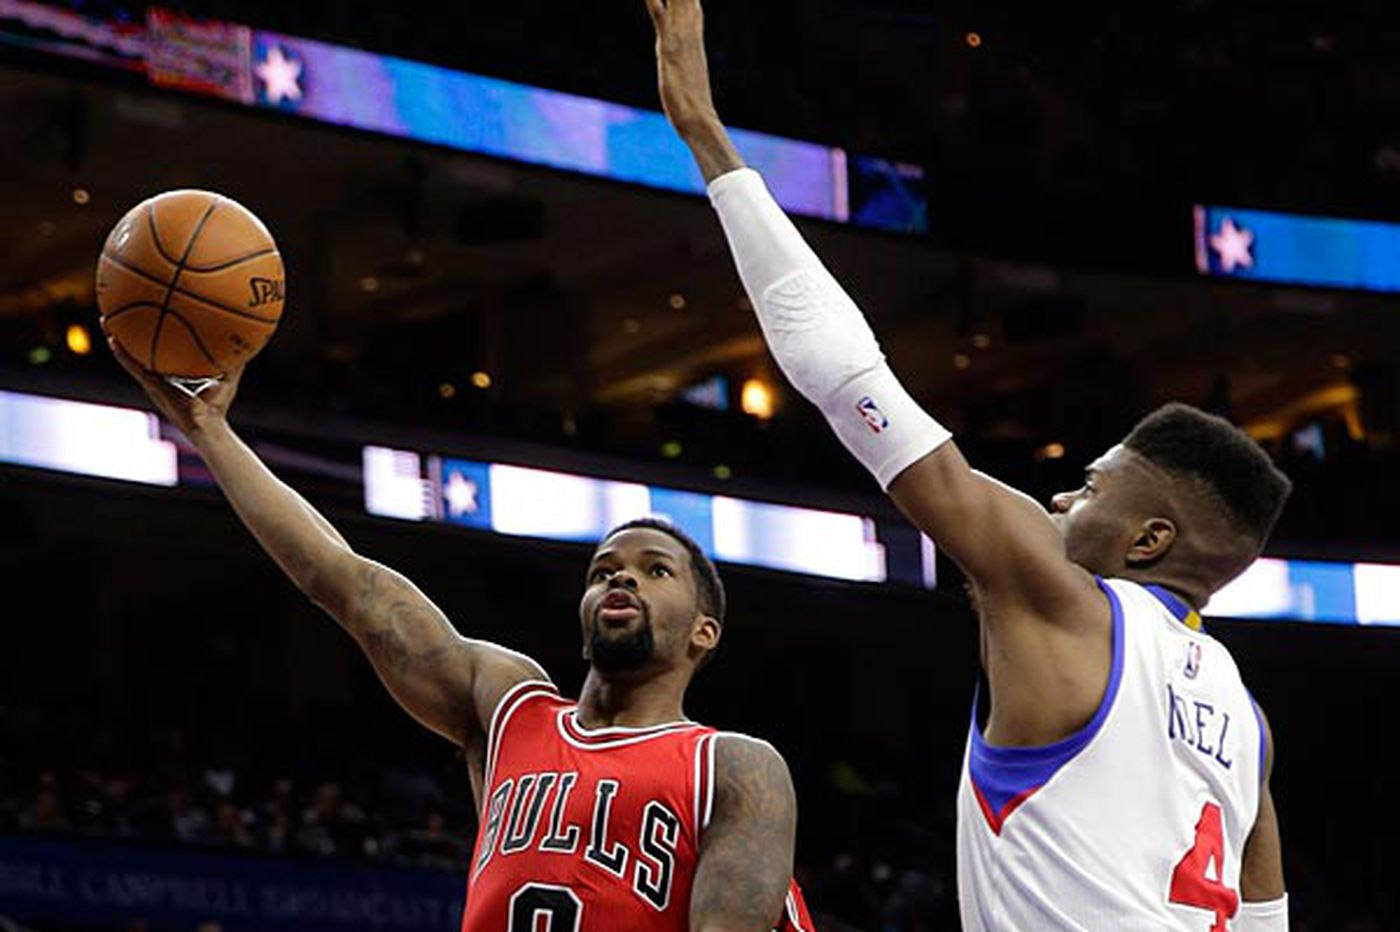 Sixers fall to the Bulls in overtime